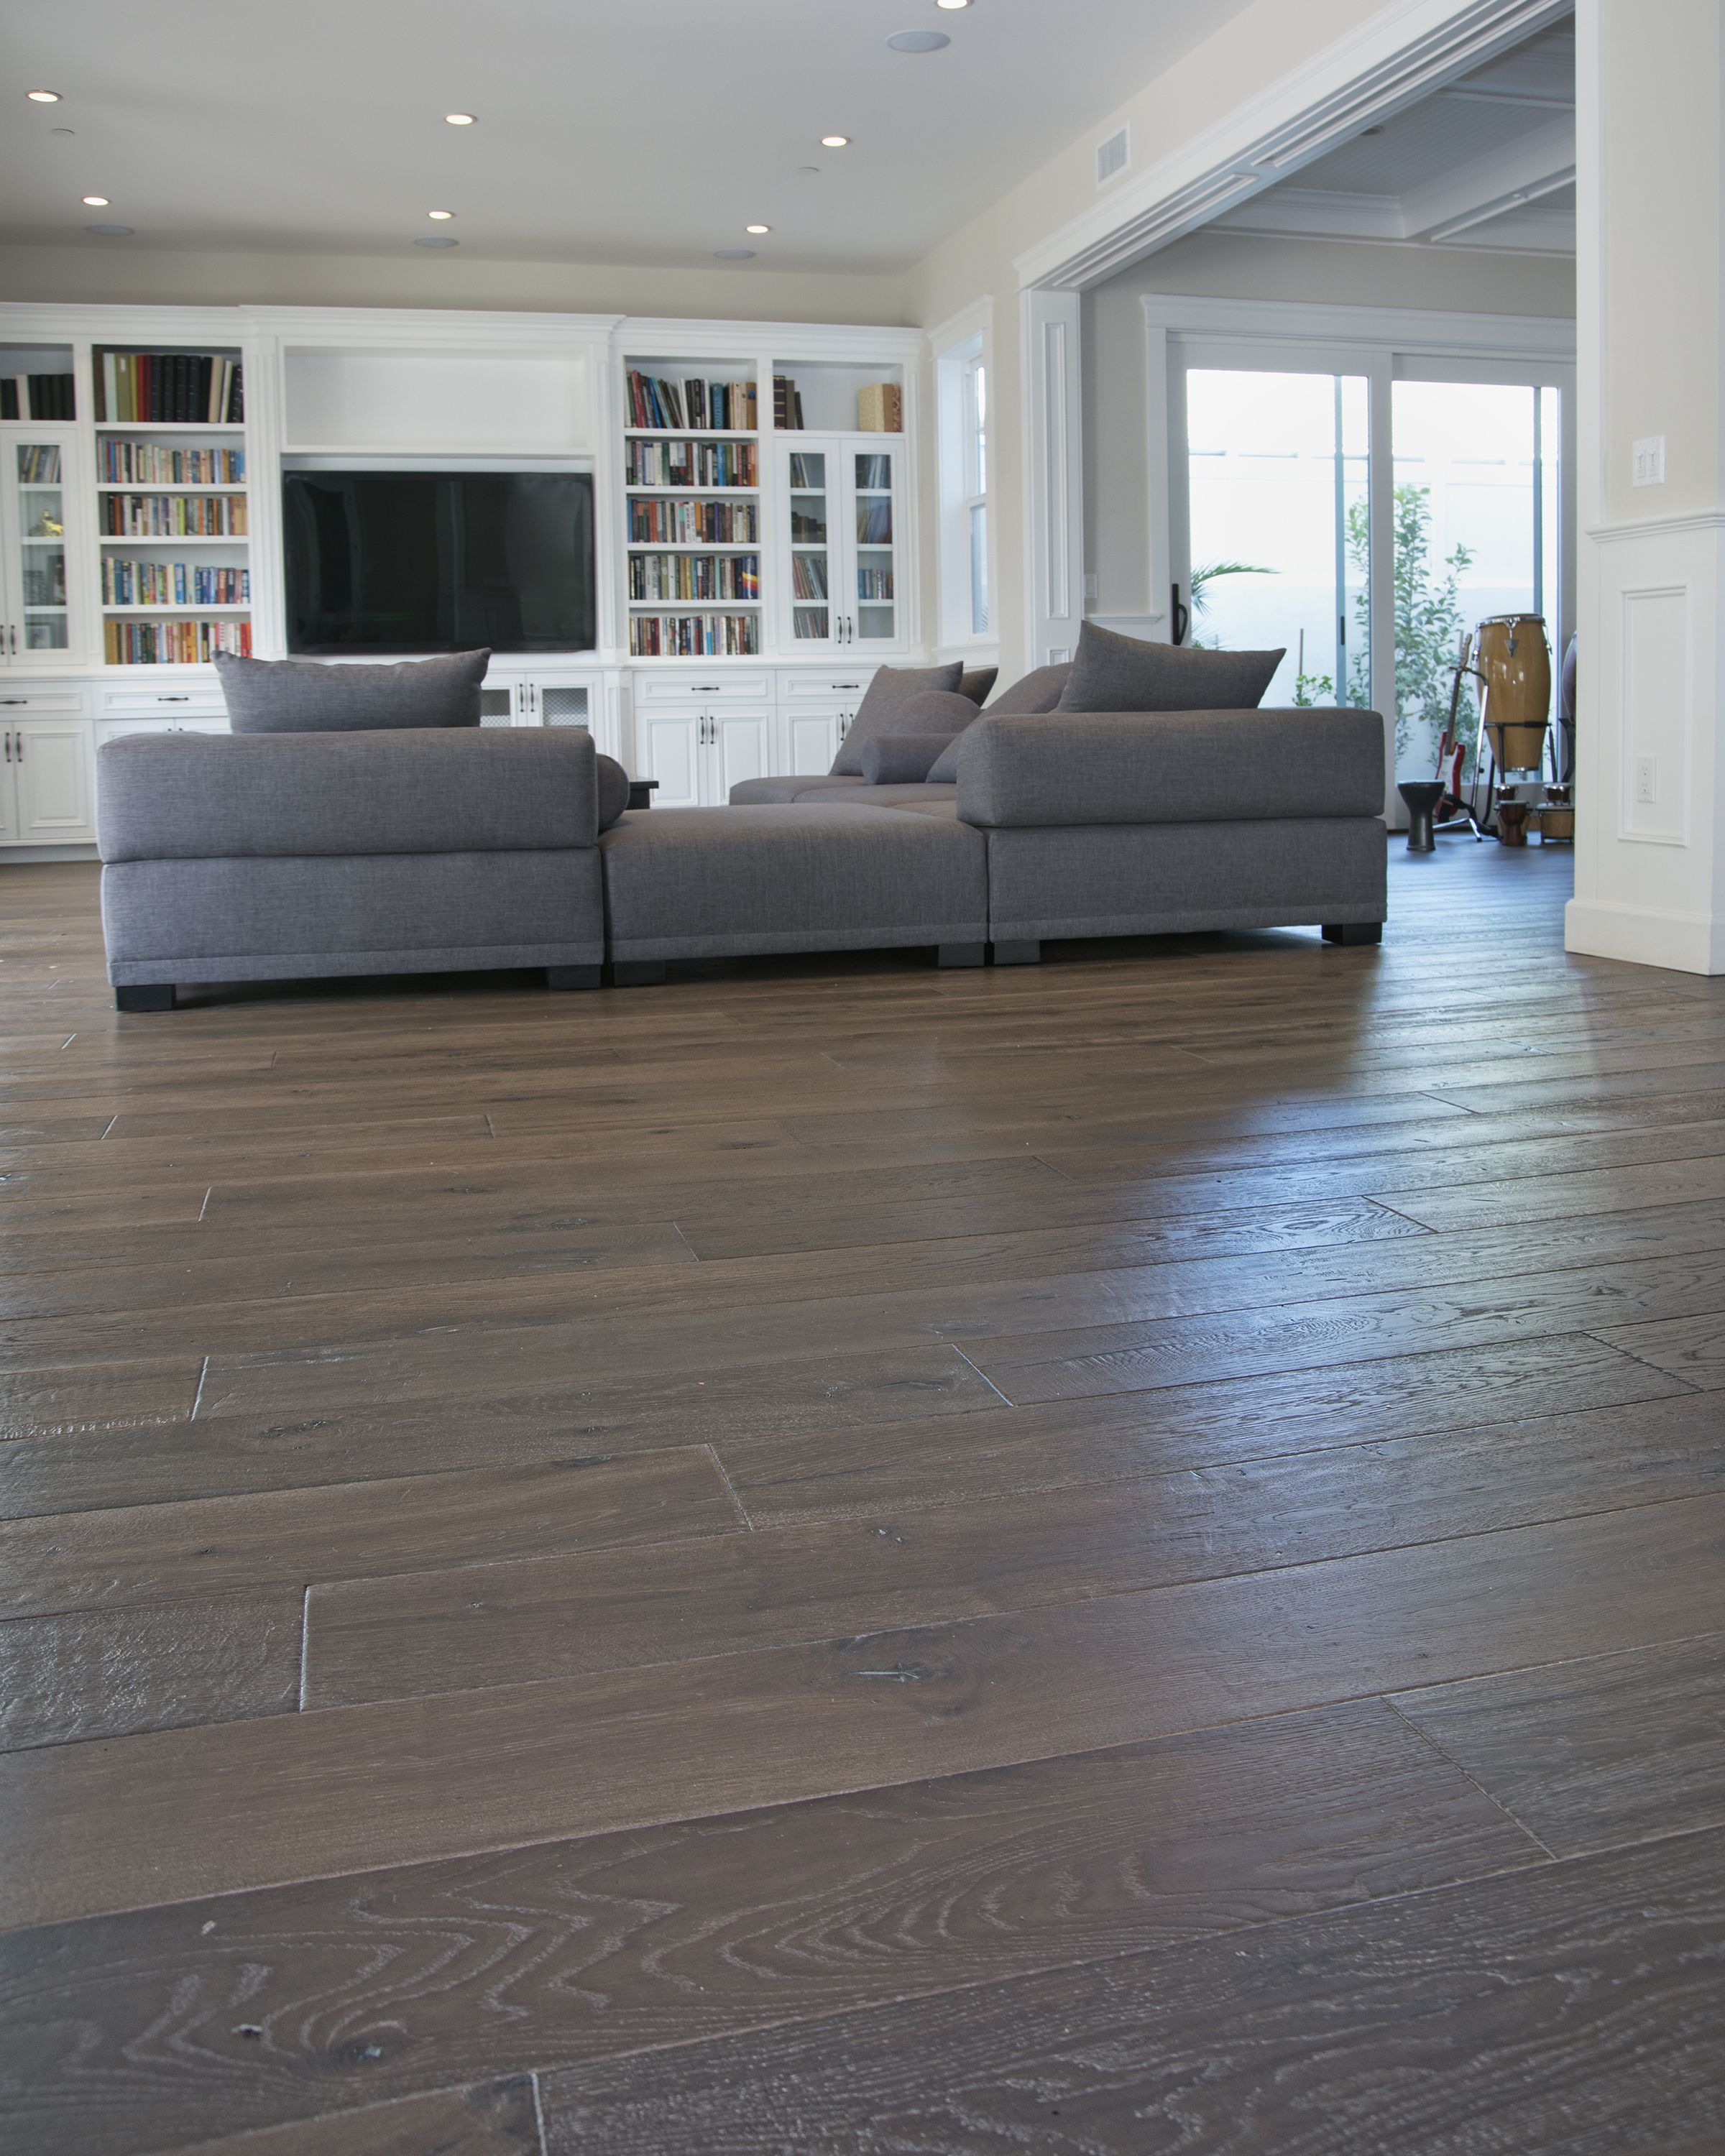 National hardwood floorings french galerie deep smoke oak national hardwood floorings french galerie deep smoke oak engineered flooring dailygadgetfo Images